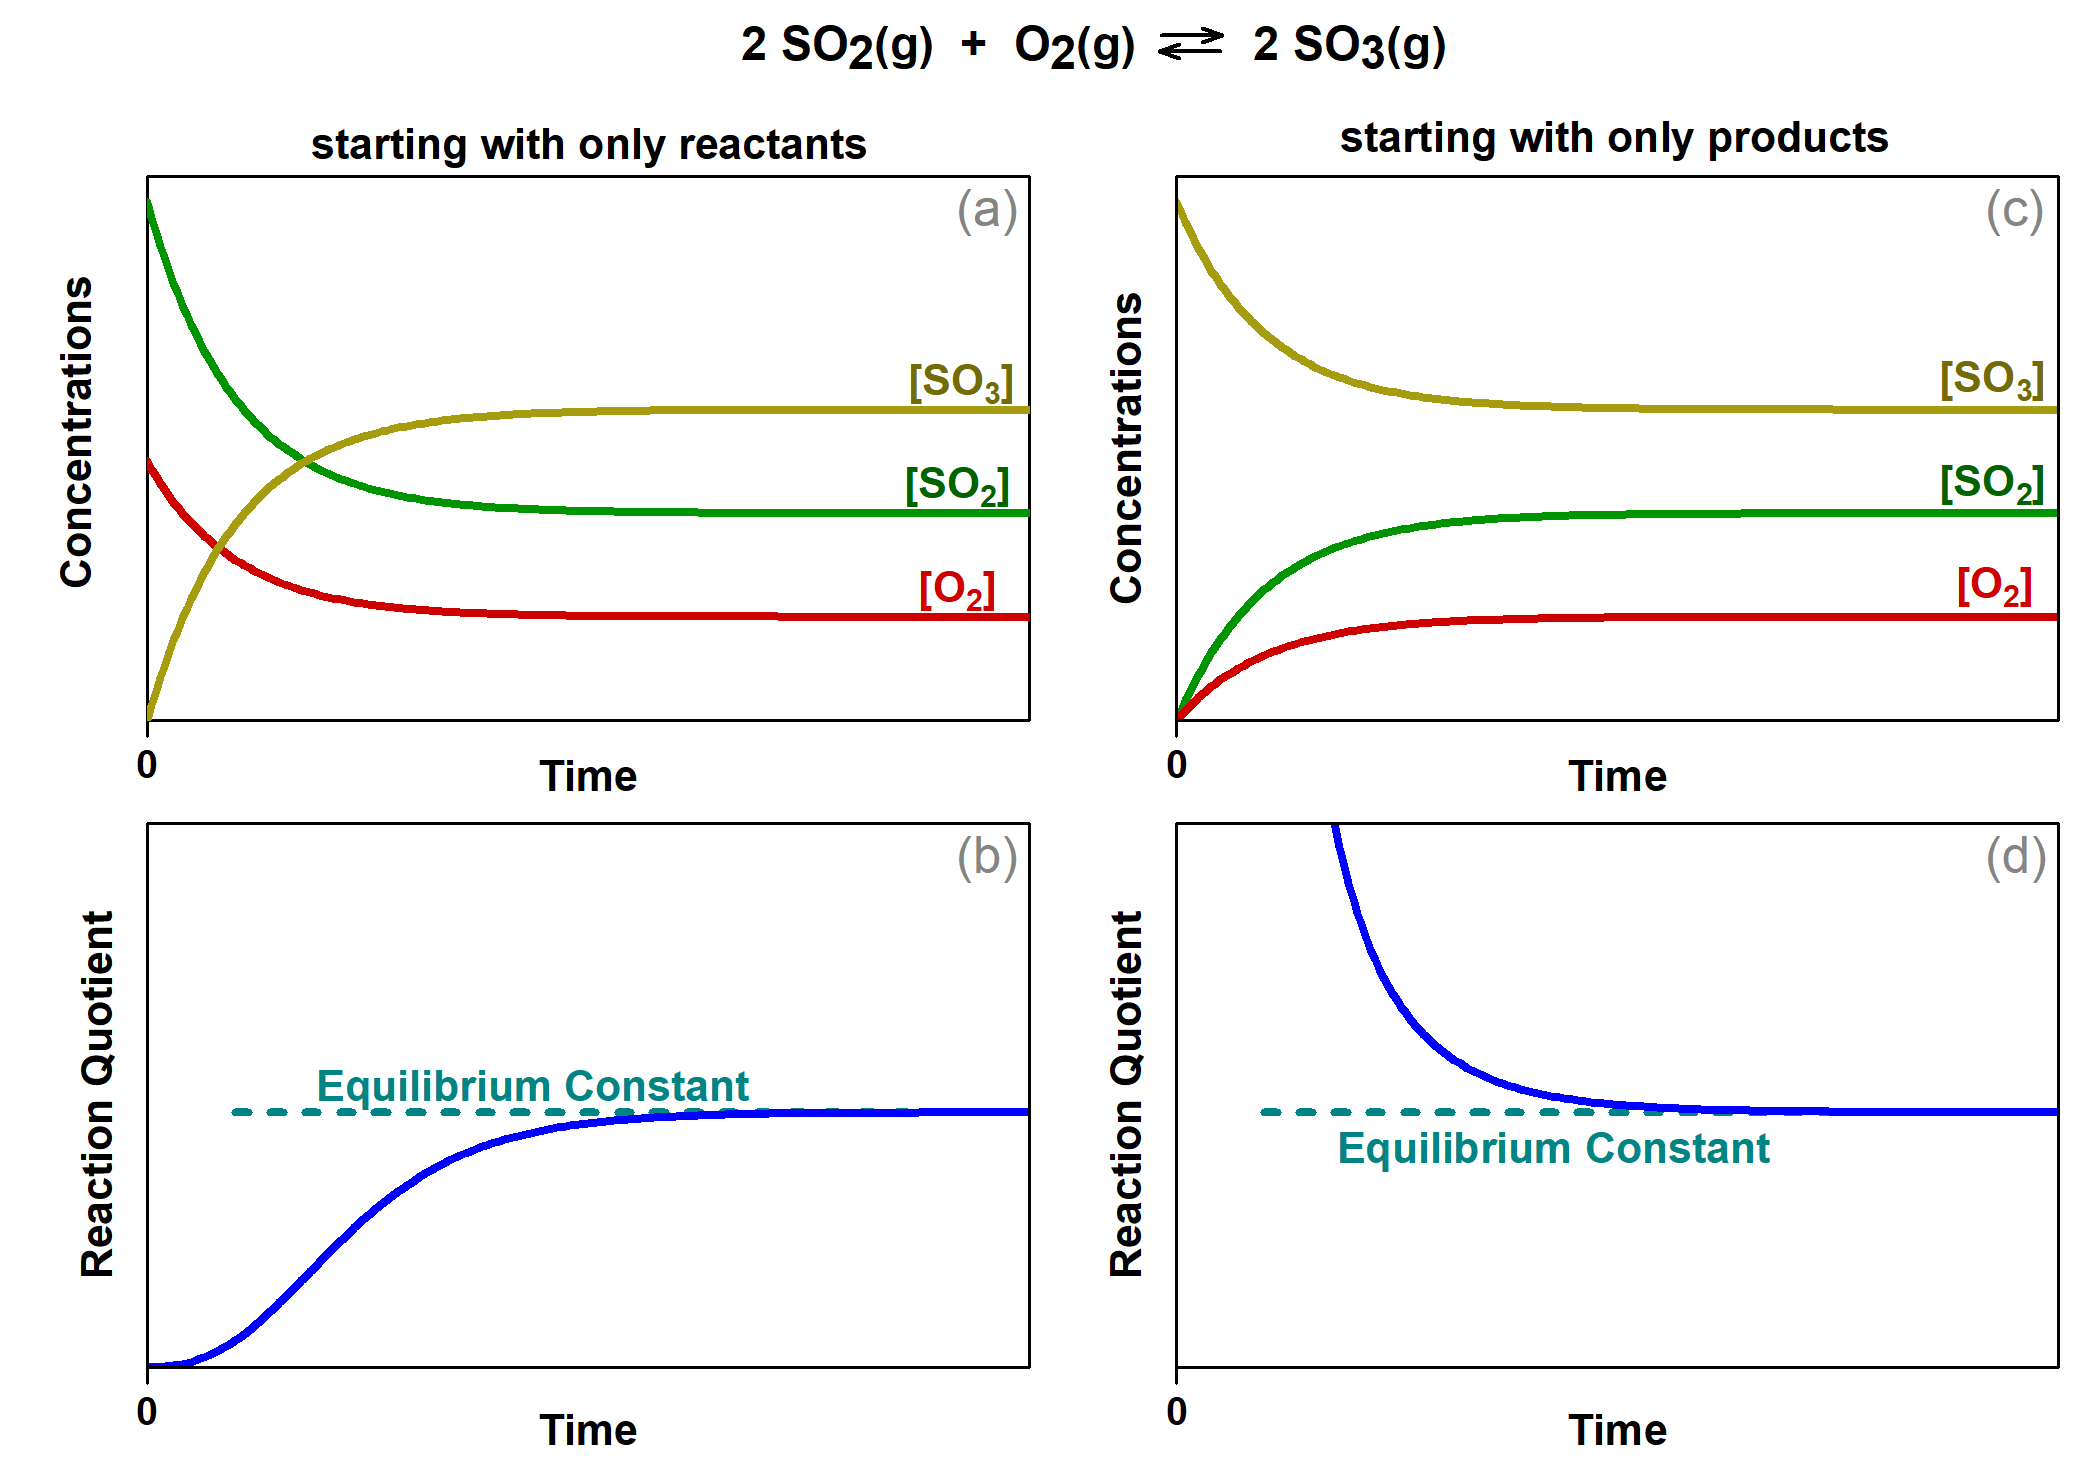 """Four graphs are shown. The y-axis on top left graph is labeled, """"Concentration,"""" and the x-axis is labeled, """"Time."""" Three curves are plotted on graph. The first is labeled, """"[ S O subscript 2 ];"""" this line starts high on the y-axis, ends midway down the y-axis, has a steep initial slope and a more gradual slope as it approaches the far right on the x-axis. The second curve on this graph is labeled, """"[ O subscript 2 ];"""" this line mimics the first except that it starts and ends about fifty percent lower on the y-axis. The third curve is the inverse of the first in shape and is labeled, """"[ S O subscript 3 ]."""" The y-axis on top right graph is labeled, """"Concentration,"""" and the x-axis is labeled, """"Time."""" Three curves are plotted on graph b. The first is labeled, """"[ S O subscript 2 ];"""" this line starts low on the y-axis, ends midway up the y-axis, has a steep initial slope and a more gradual slope as it approaches the far right on the x-axis. The second curve on this graph is labeled, """"[ O subscript 2 ];"""" this line mimics the first except that it ends about fifty percent lower on the y-axis. The third curve is the inverse of the first in shape and is labeled, """"[ S O subscript 3 ]."""" The y-axis on bottom left graph is labeled, """"Reaction Quotient,"""" and the x-axis is labeled, """"Time."""" A single curve is plotted on graph c. This curve begins at the bottom of the y-axis and rises steeply up near the top of the y-axis, then levels off into a horizontal line. The top point of this line is labeled, """"kc."""""""